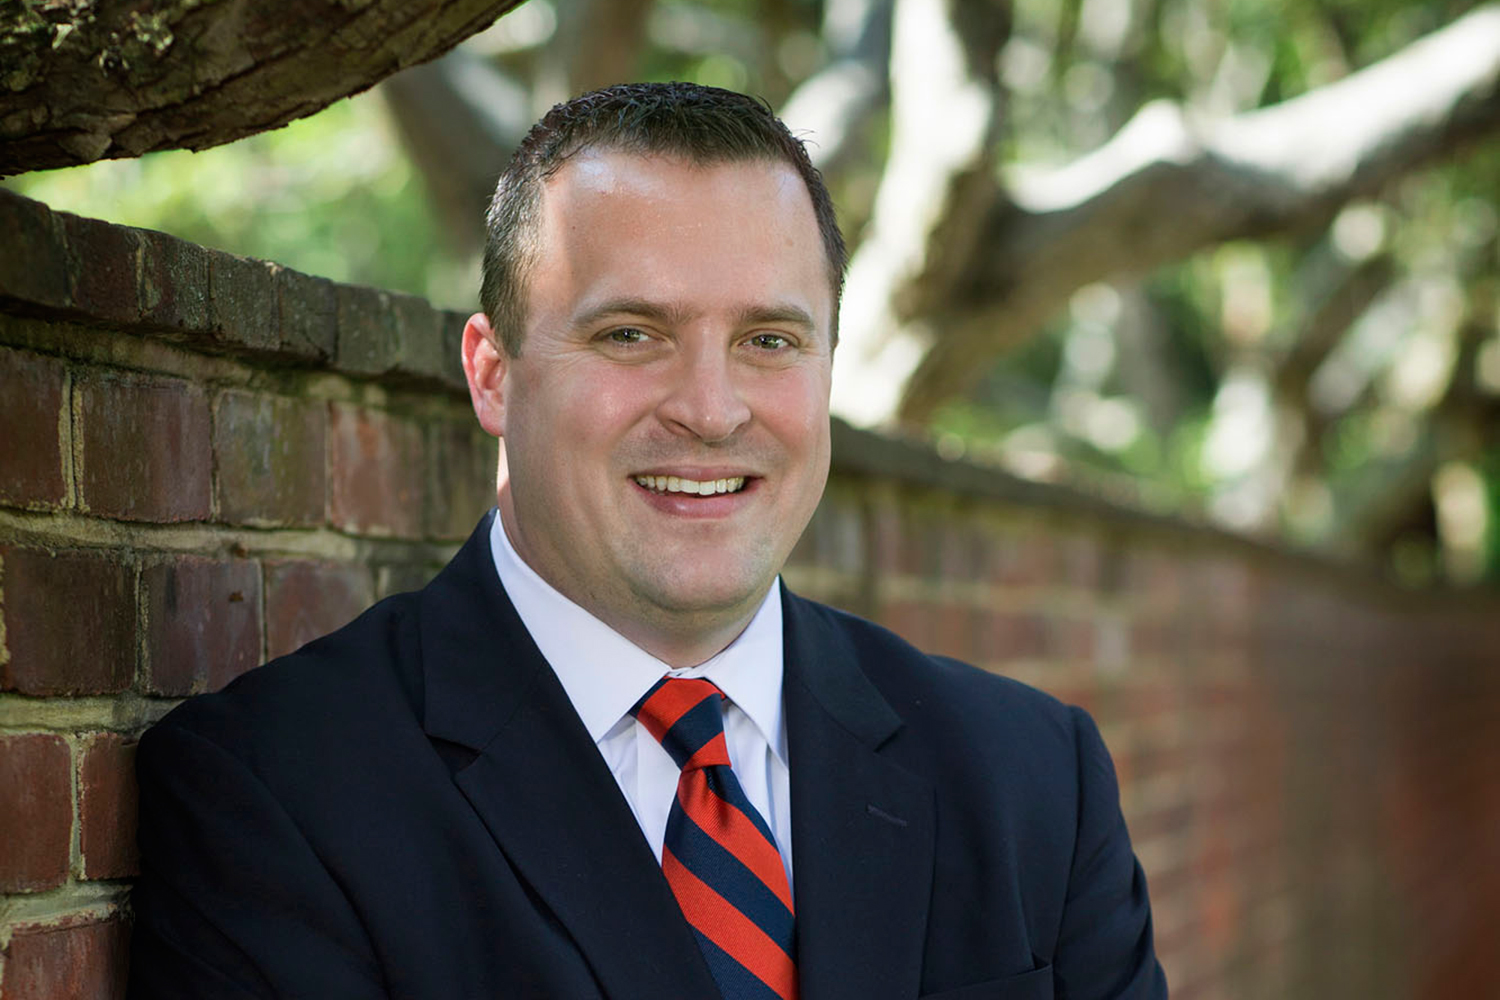 Mark Luellen is currently UVA's senior associate vice president for development and director of its third century campaign.